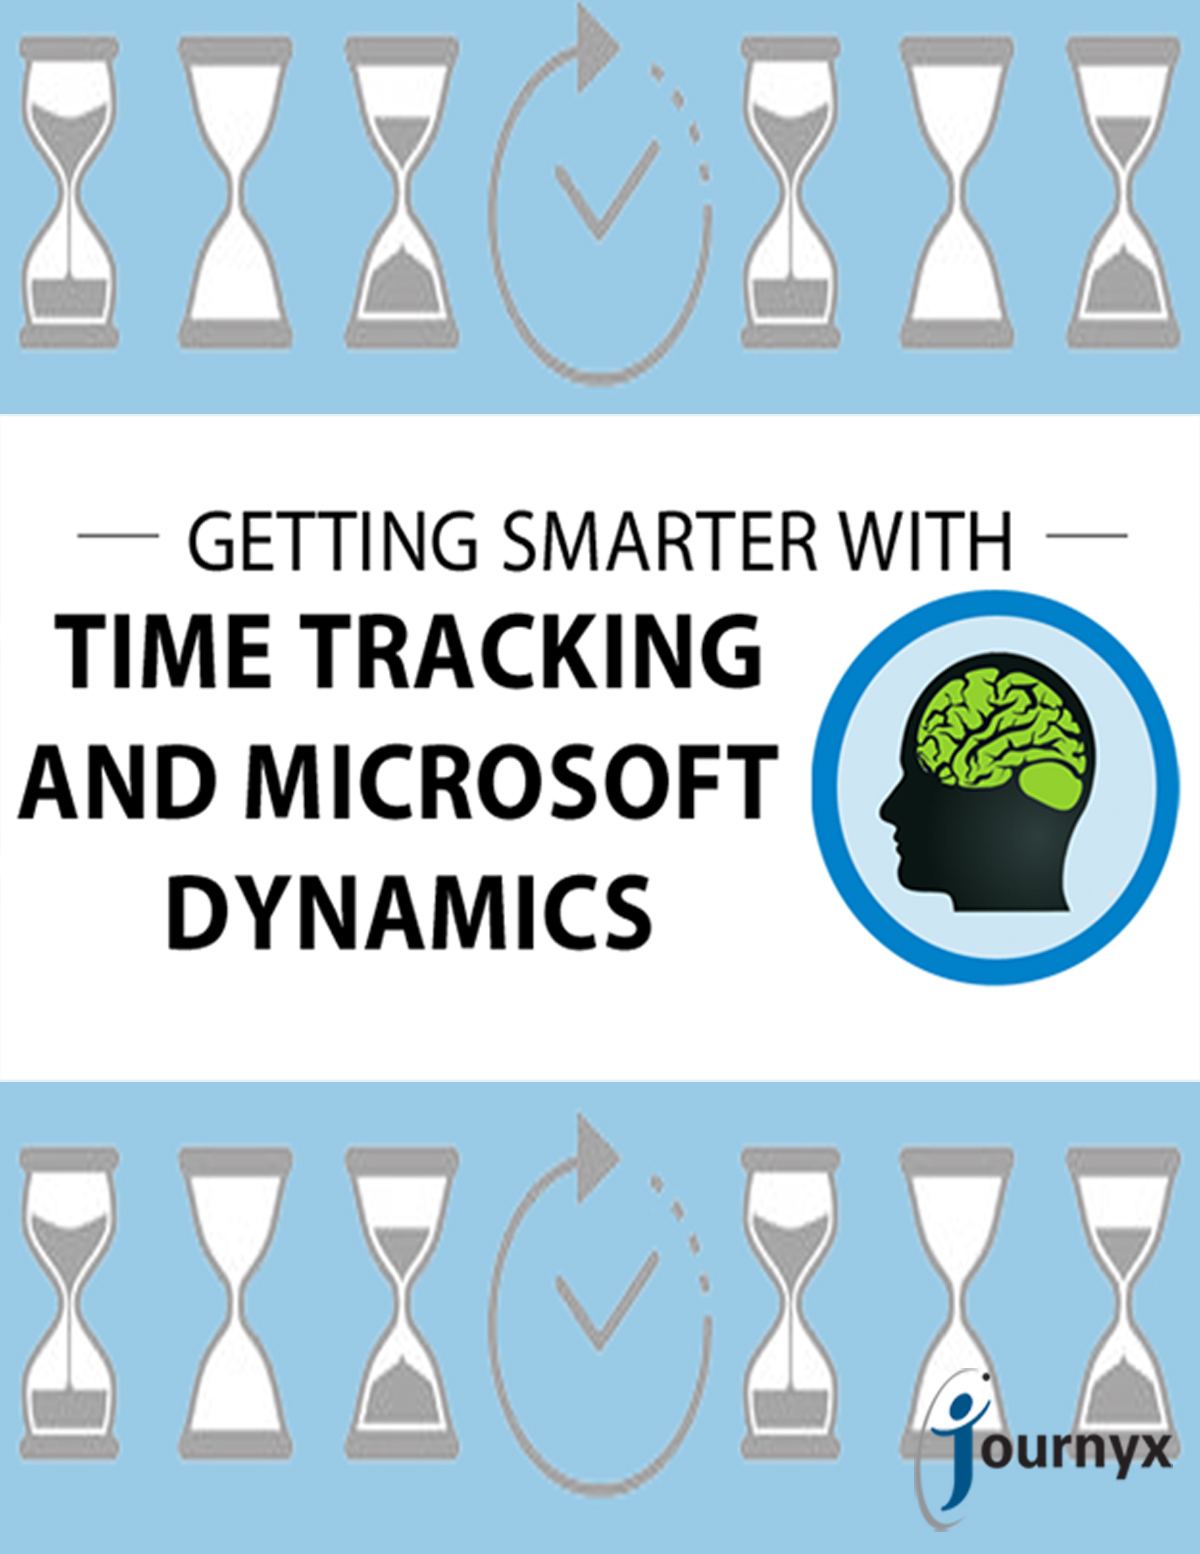 time track and microsoft dynamics graphic